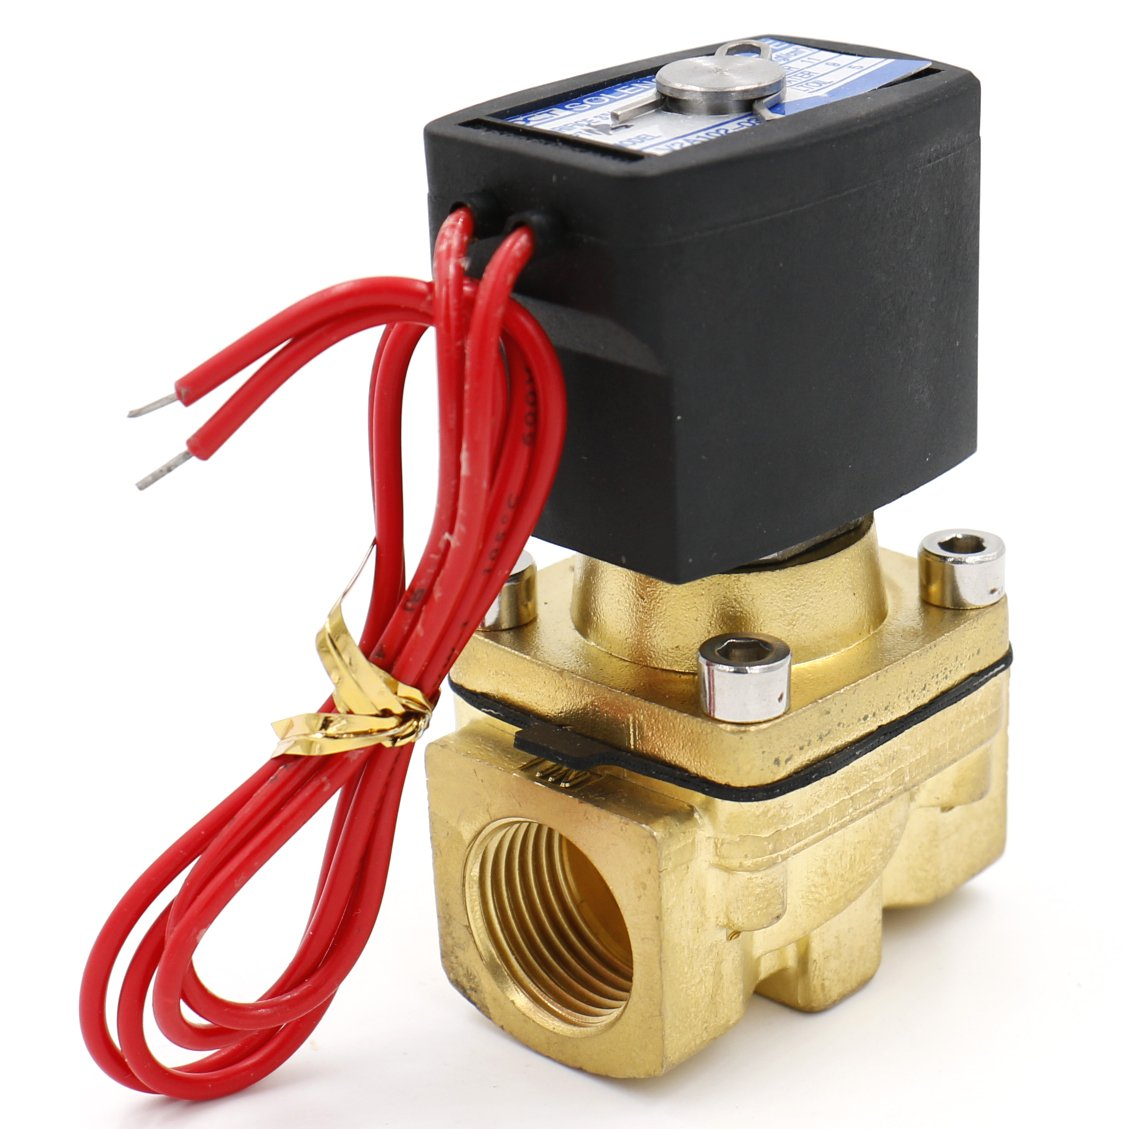 Heschen brass electric solenoid valve V2A102-03 12 VDC PT 1/2' 2 port 2 position direct action water air oil valve normally closed Heschen Electric Co.Ltd